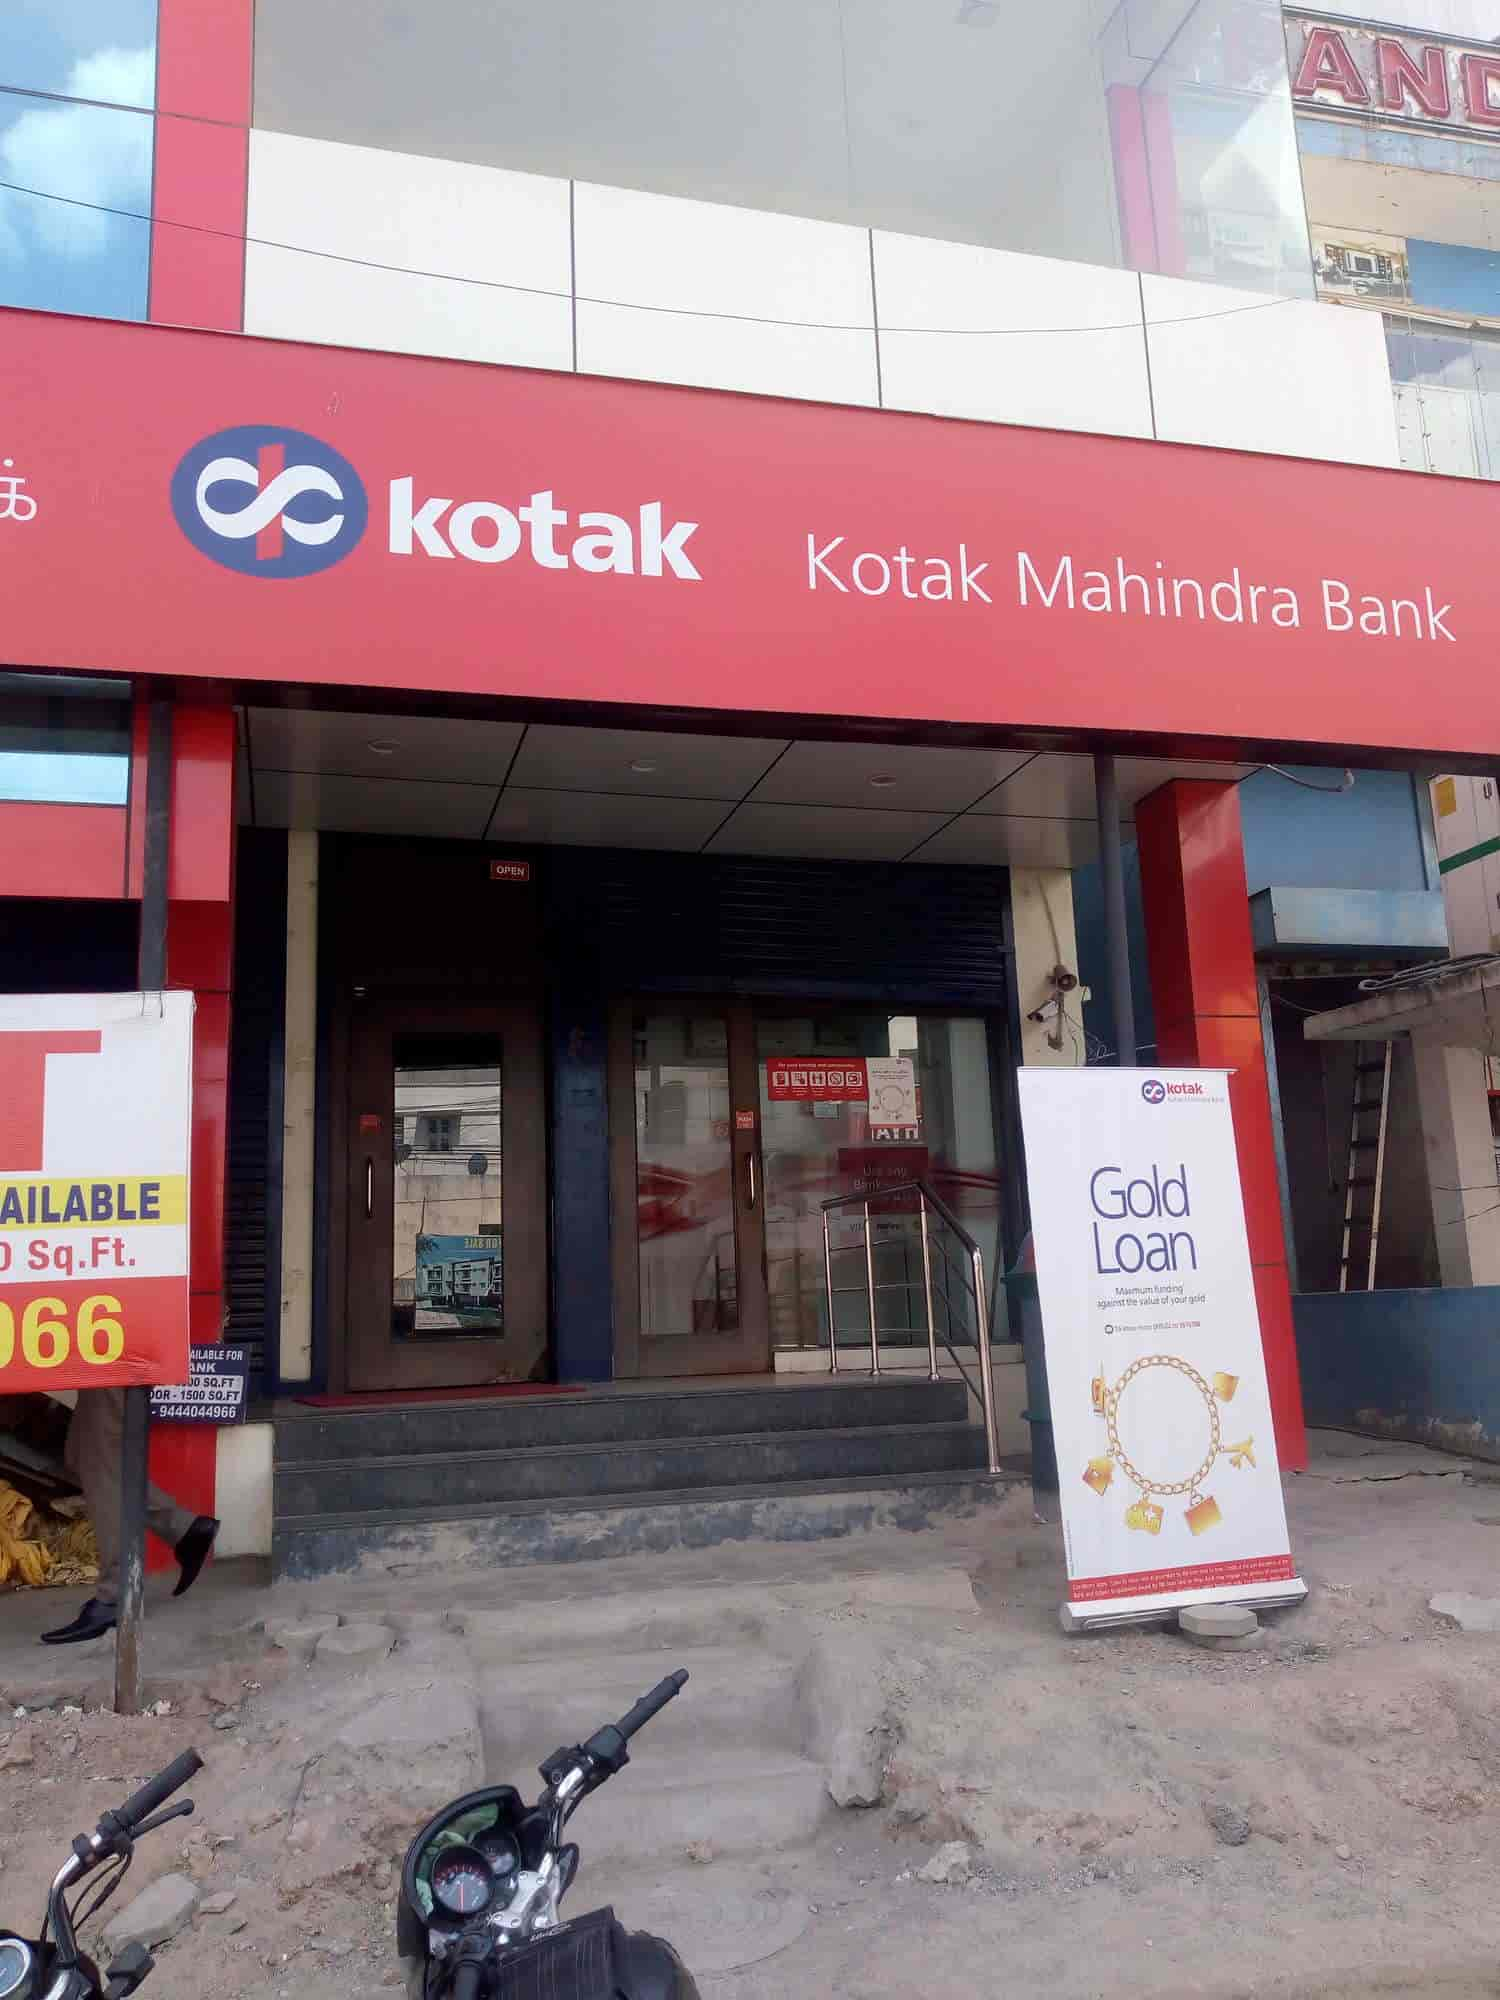 List Of Kotak Mahindra Bank Branches In Alandur St Thomas Mount Kotak Mahindra Bank Branch Near Me Justdial